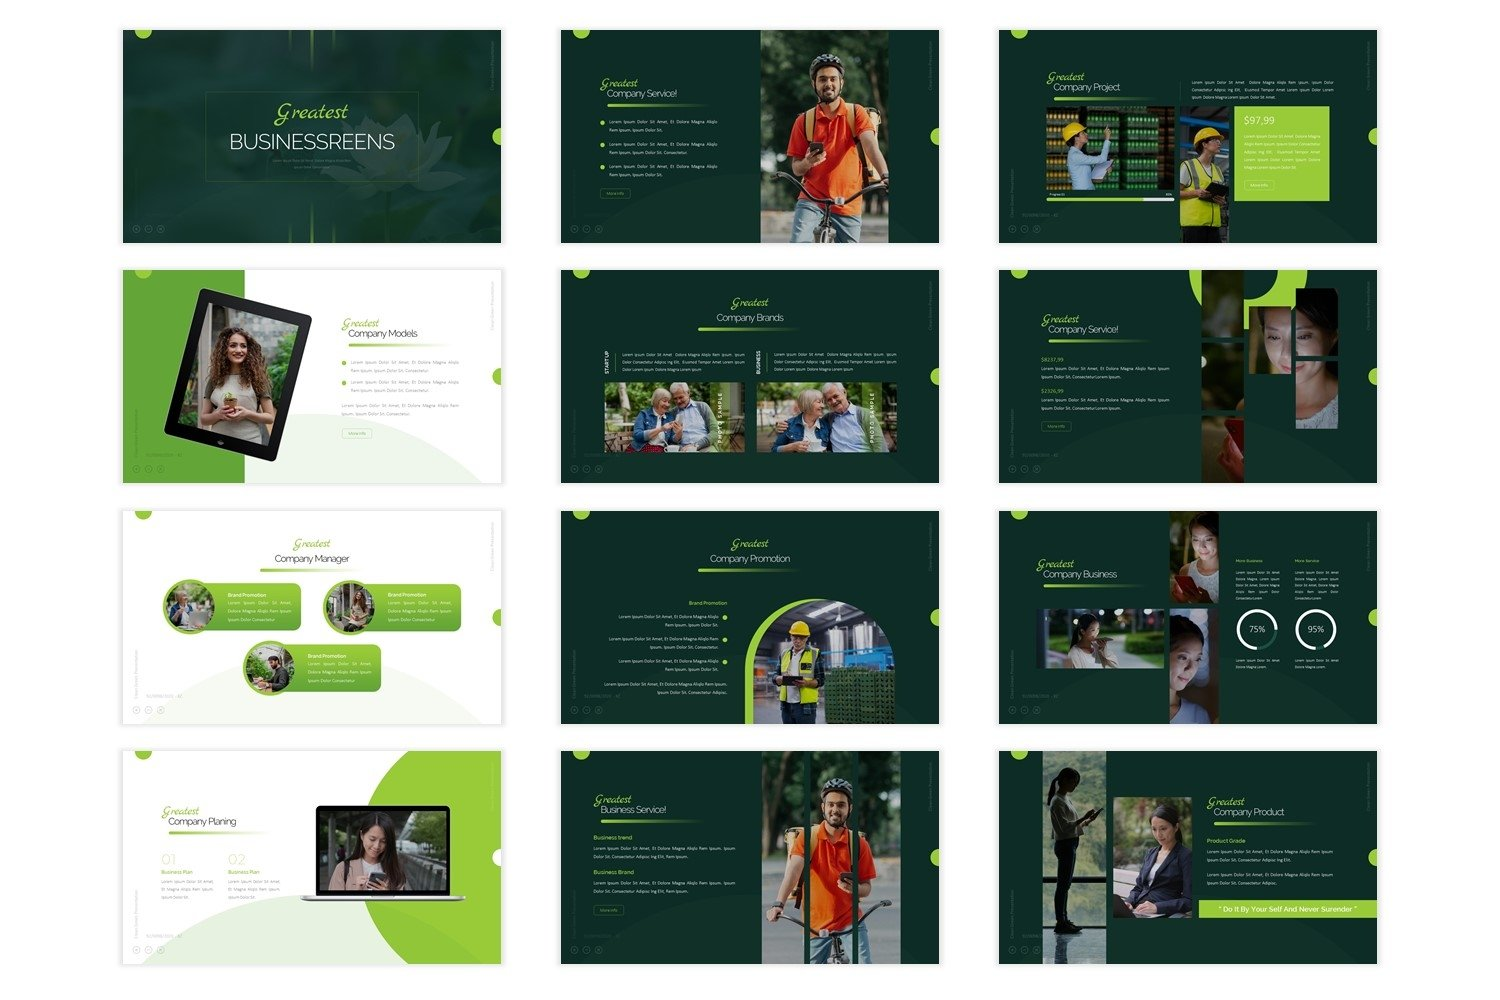 Greatest - Powerpoint Template example image 2